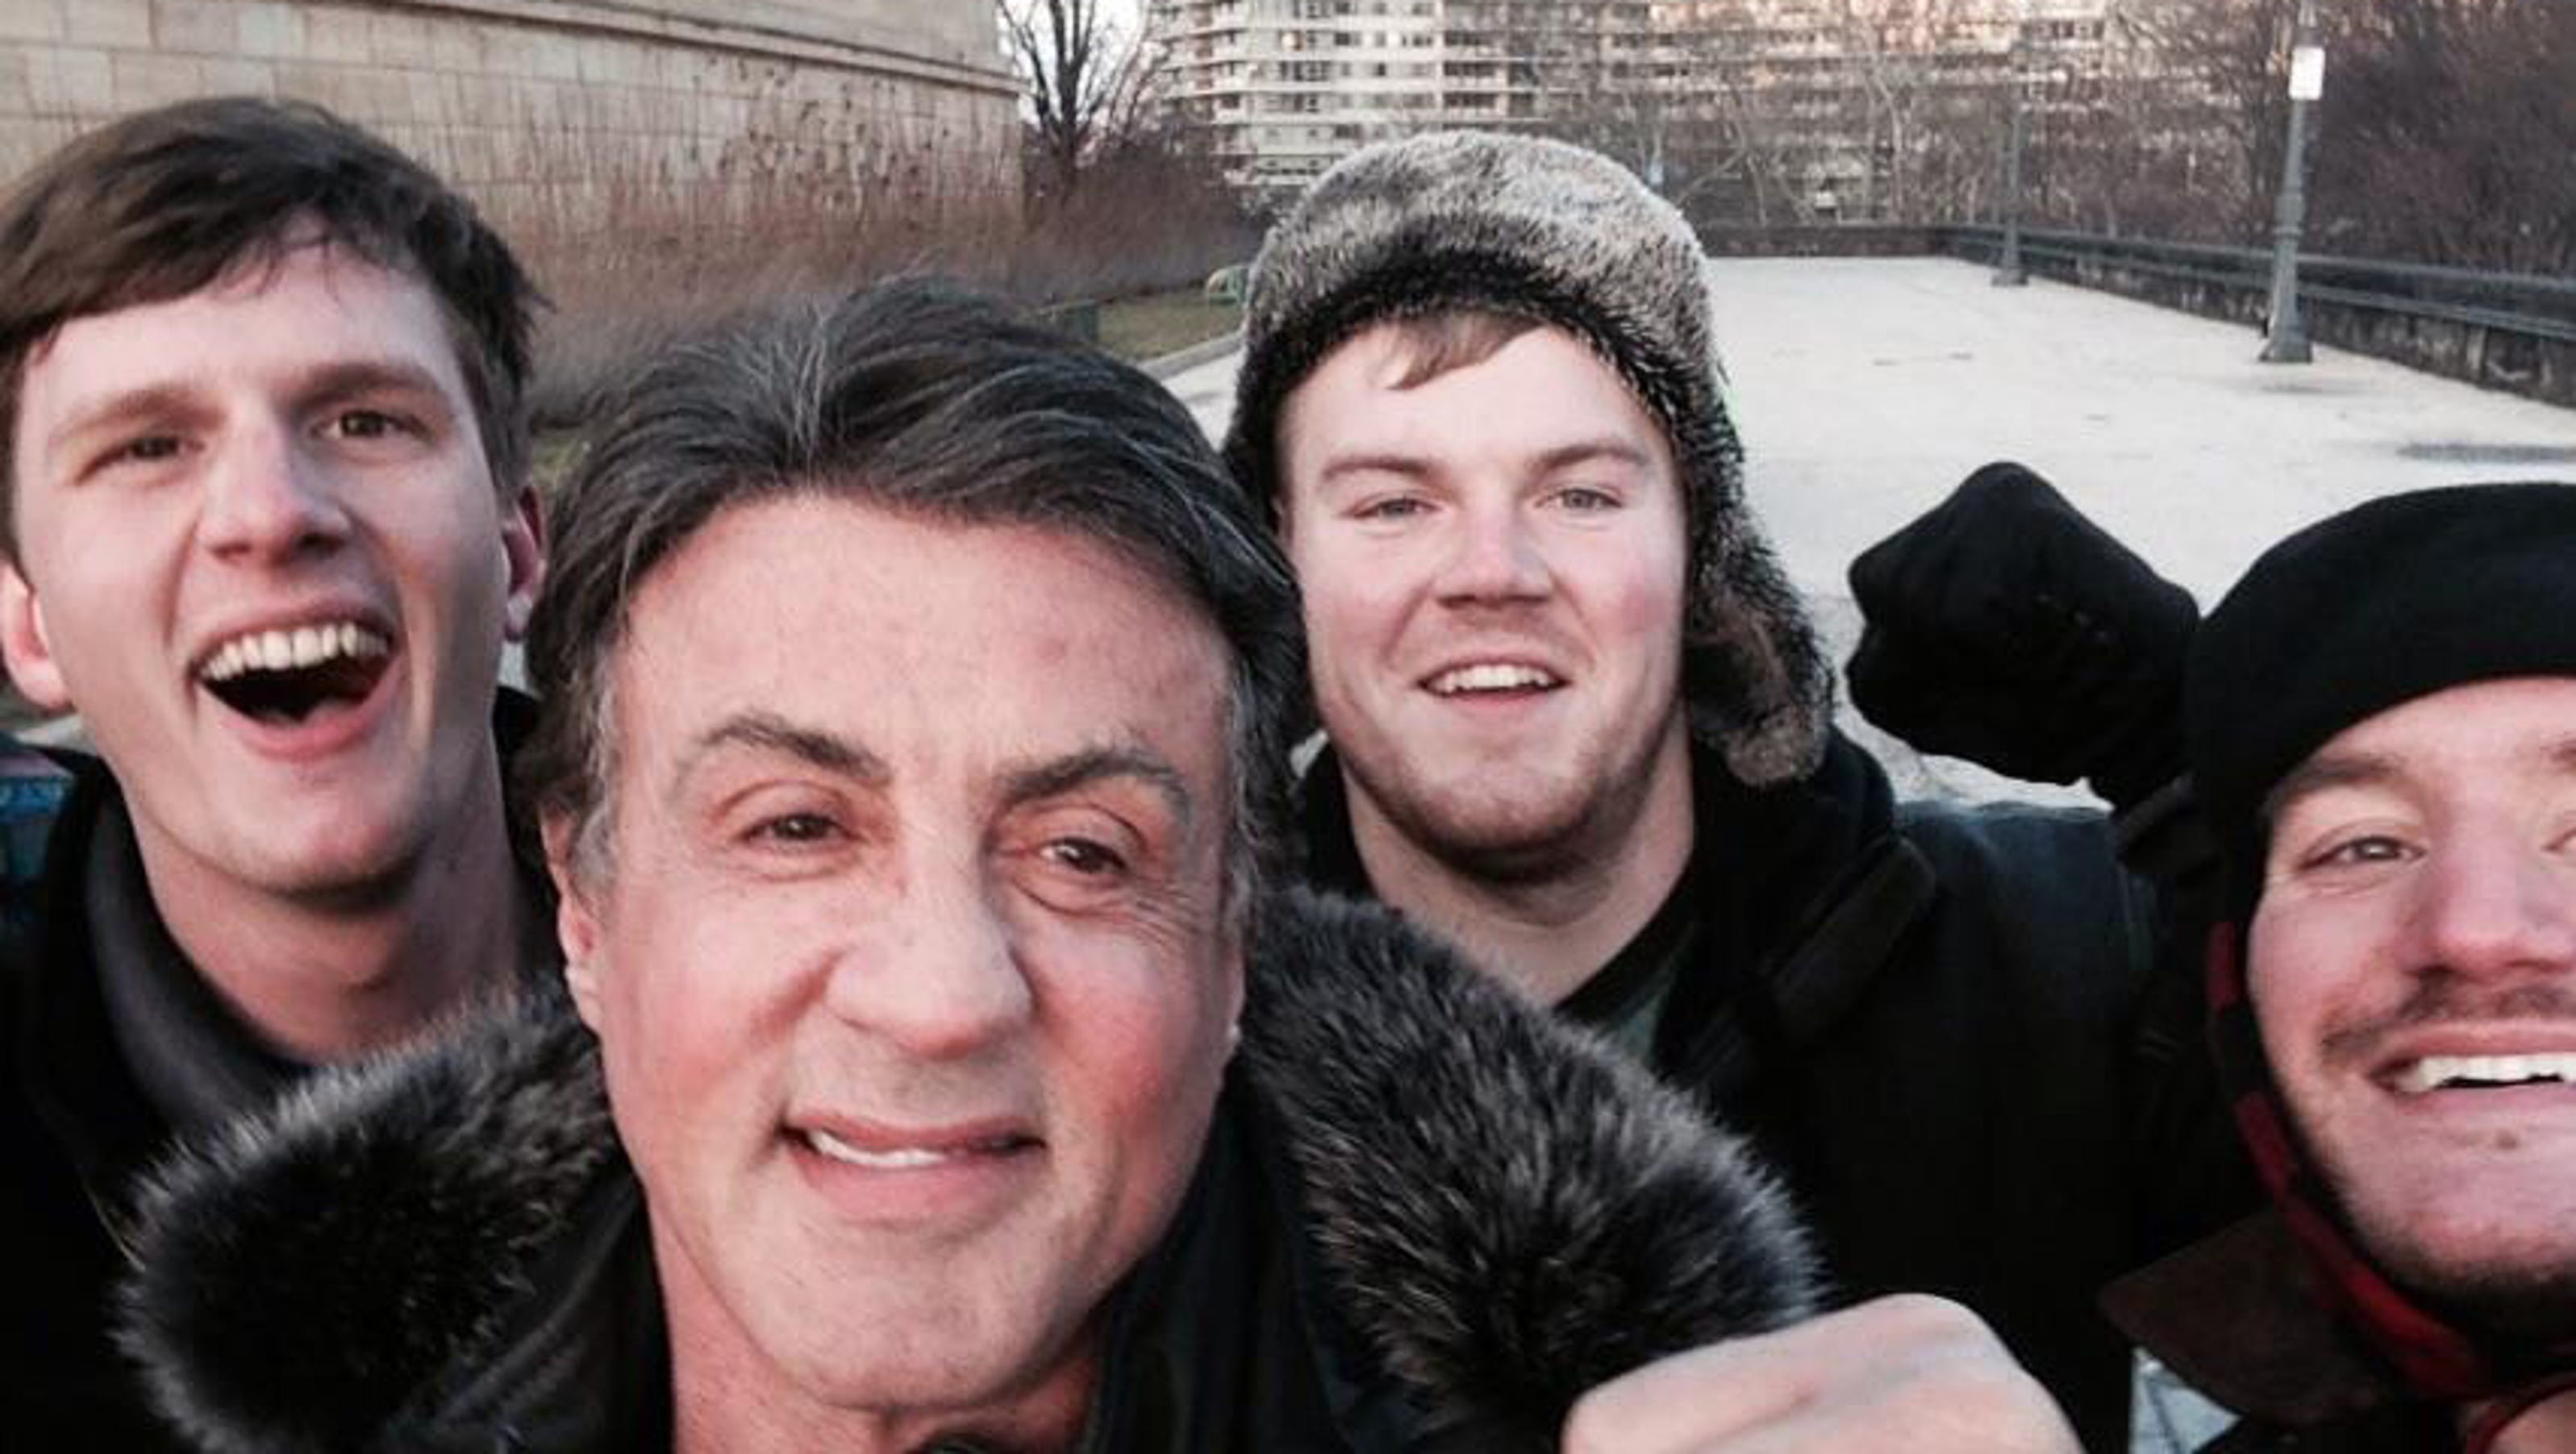 Odd news: Tourists meet Stallone atop 'Rocky' steps - Appleton Post Crescent